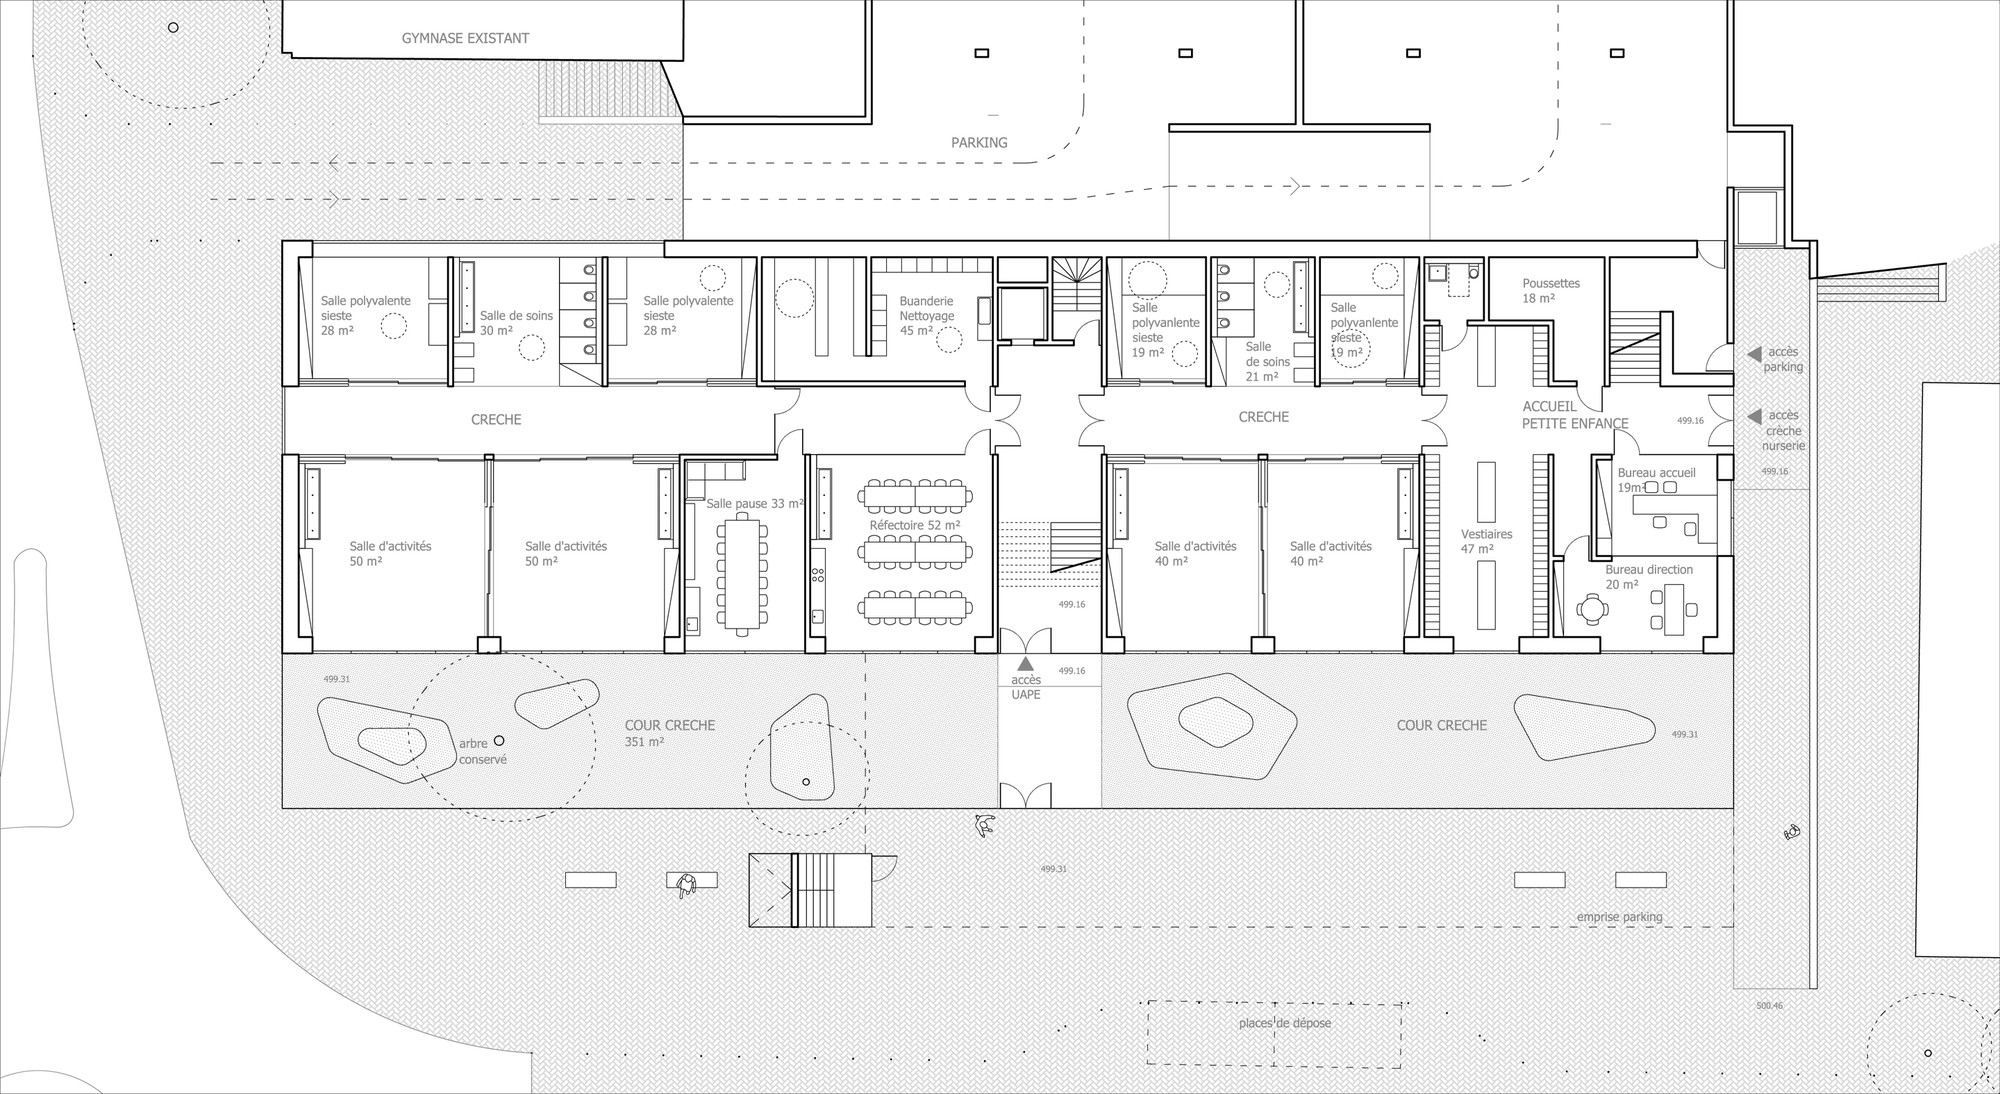 superpose school extension competition entry overcode ground floor two bedroom victorian flat floor plan side